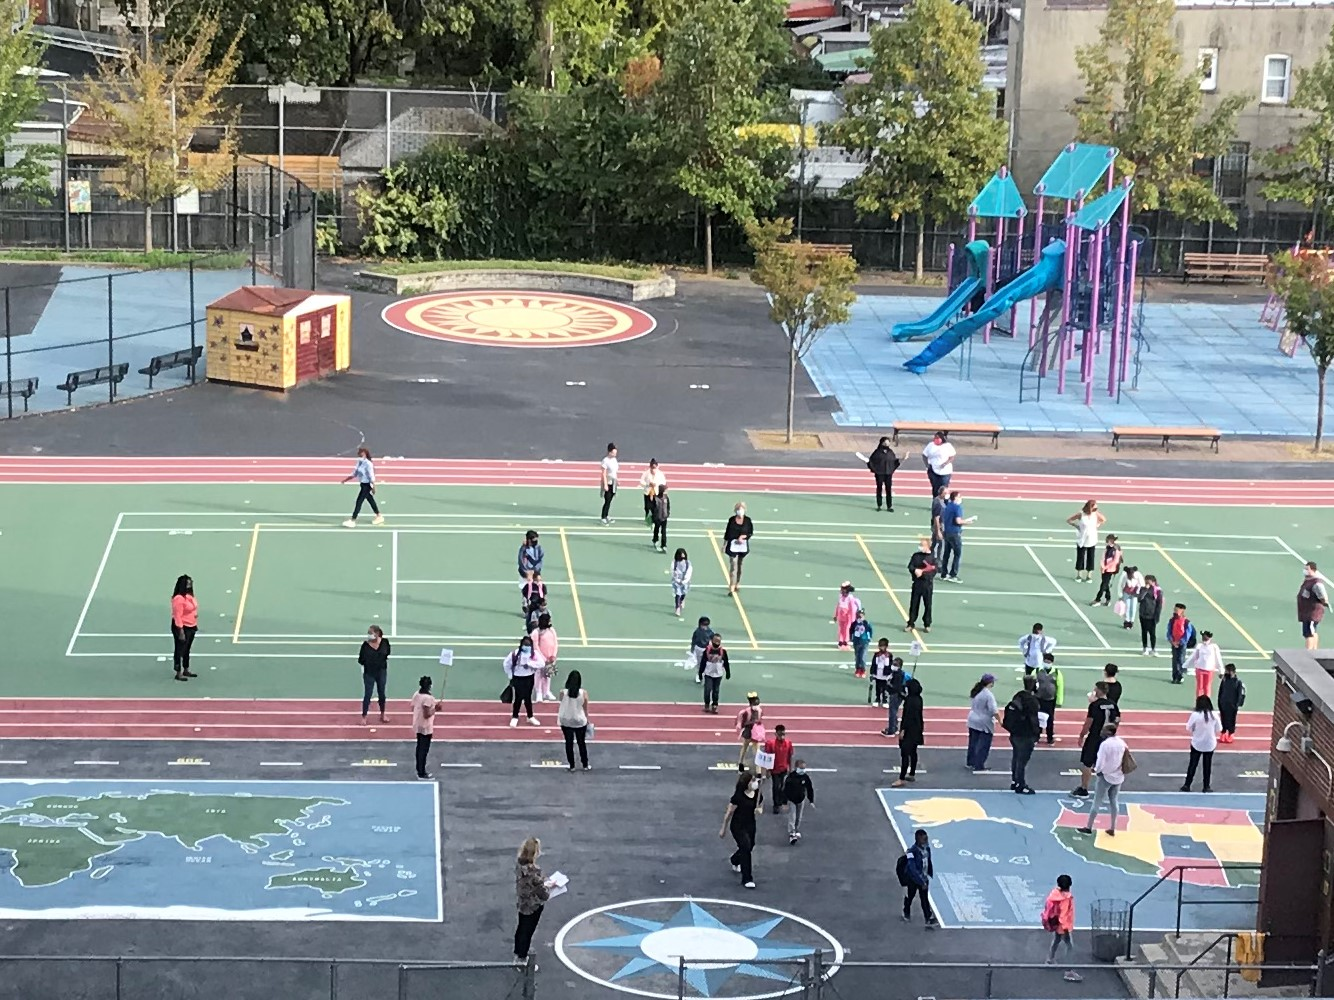 Aerial View of schoolyard